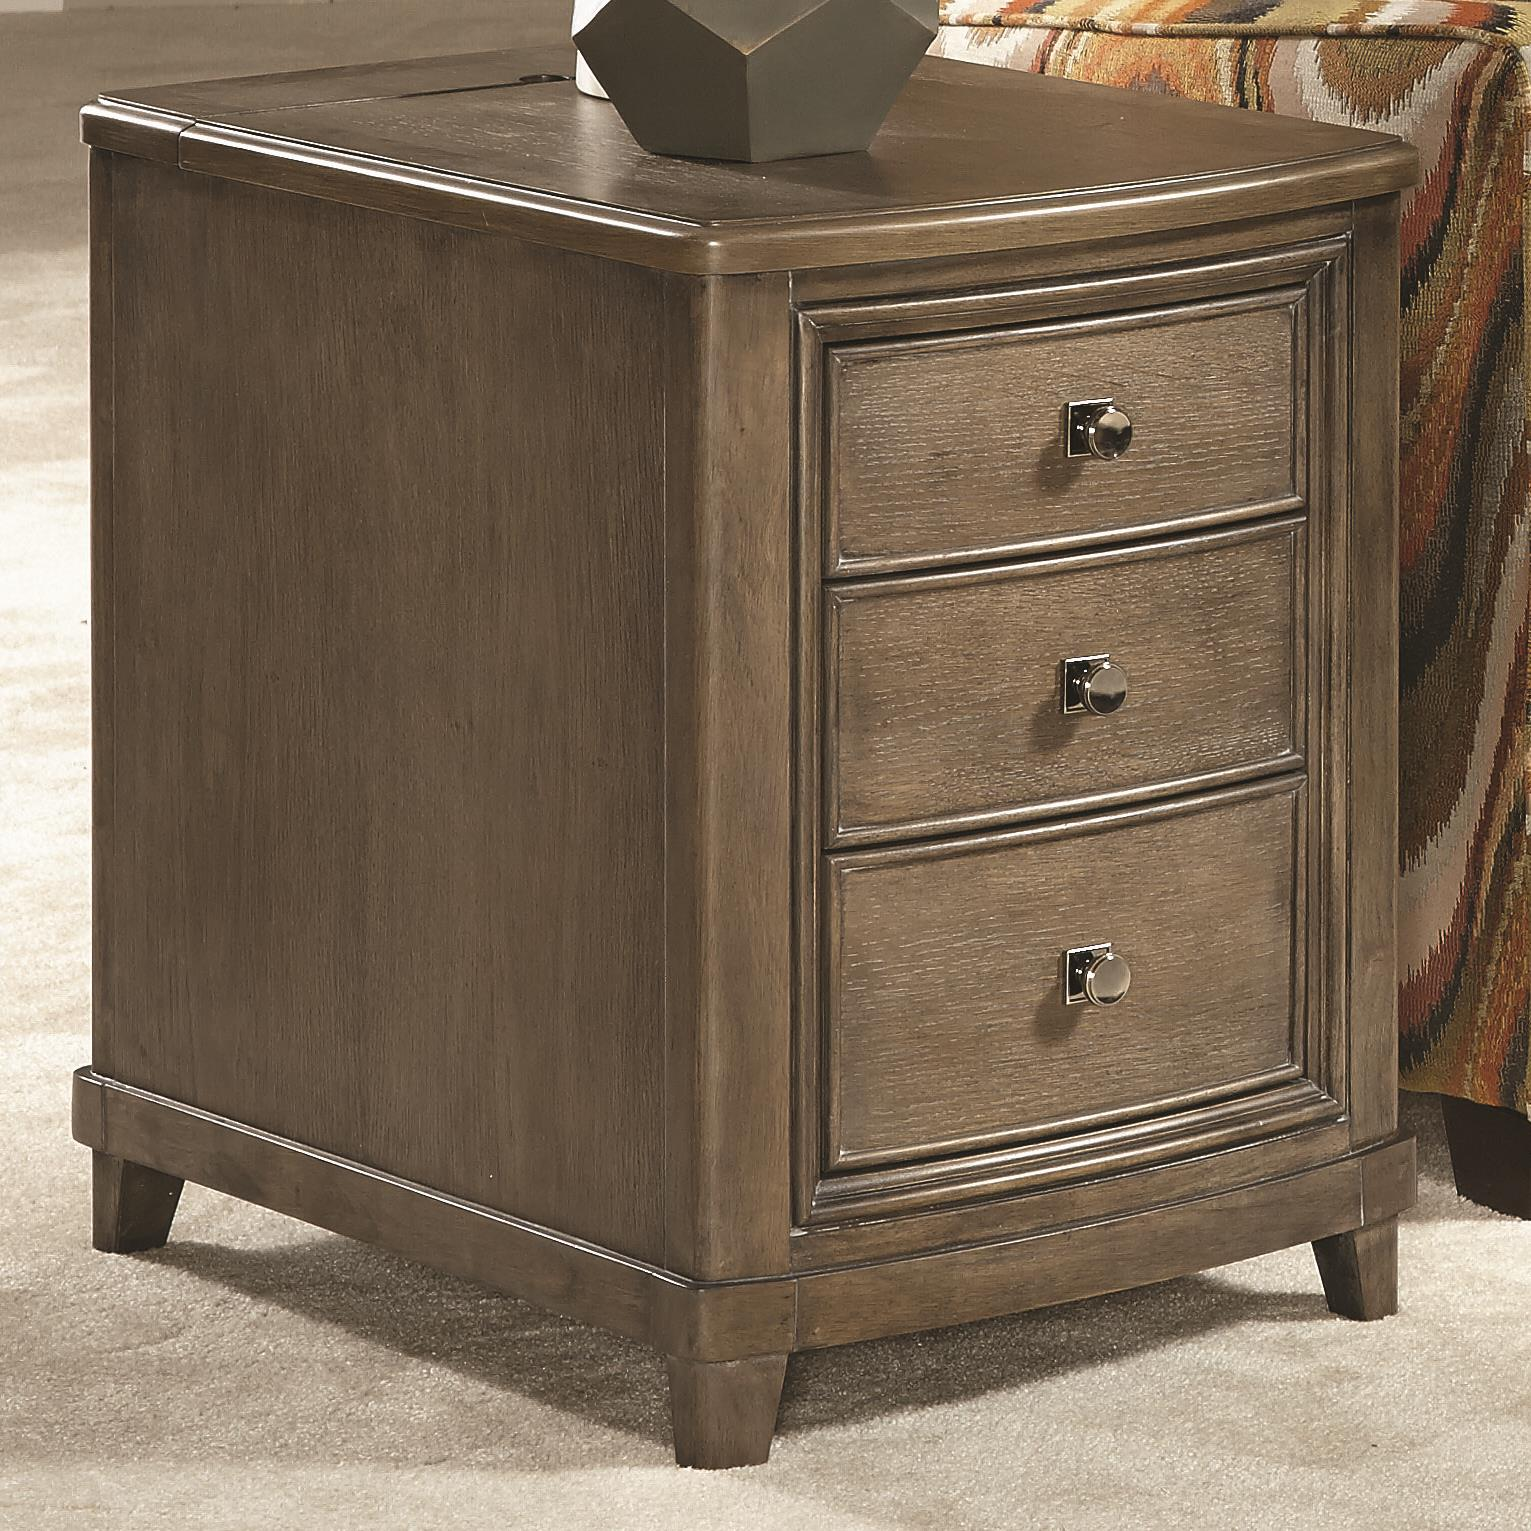 American Drew Park Studio Chairside Table with 3 Drawers